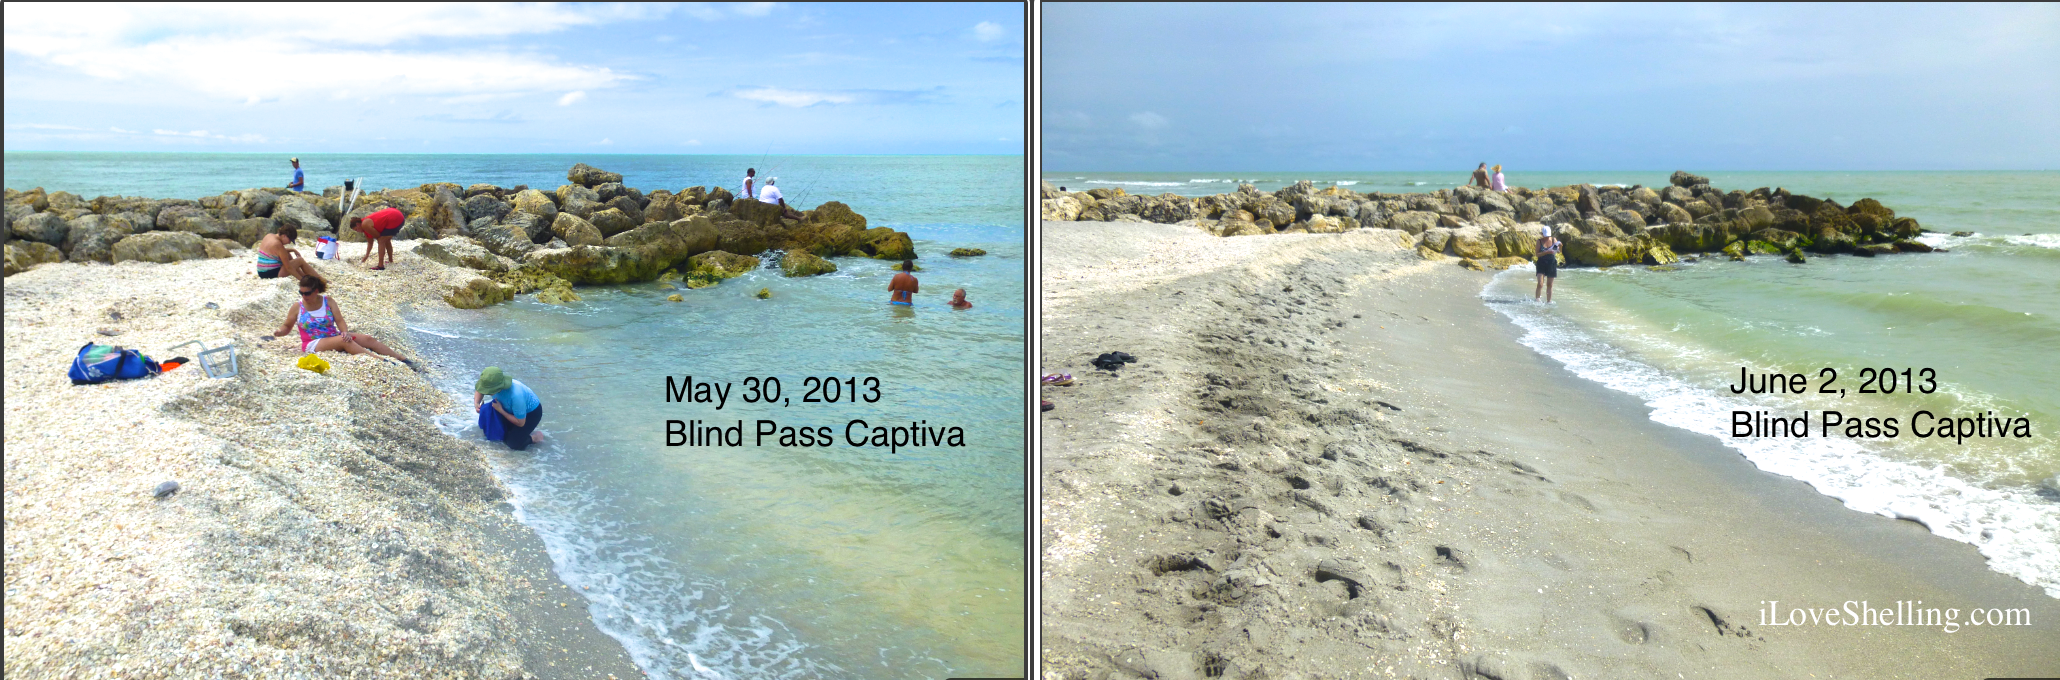 Blind Pass changes May 2013